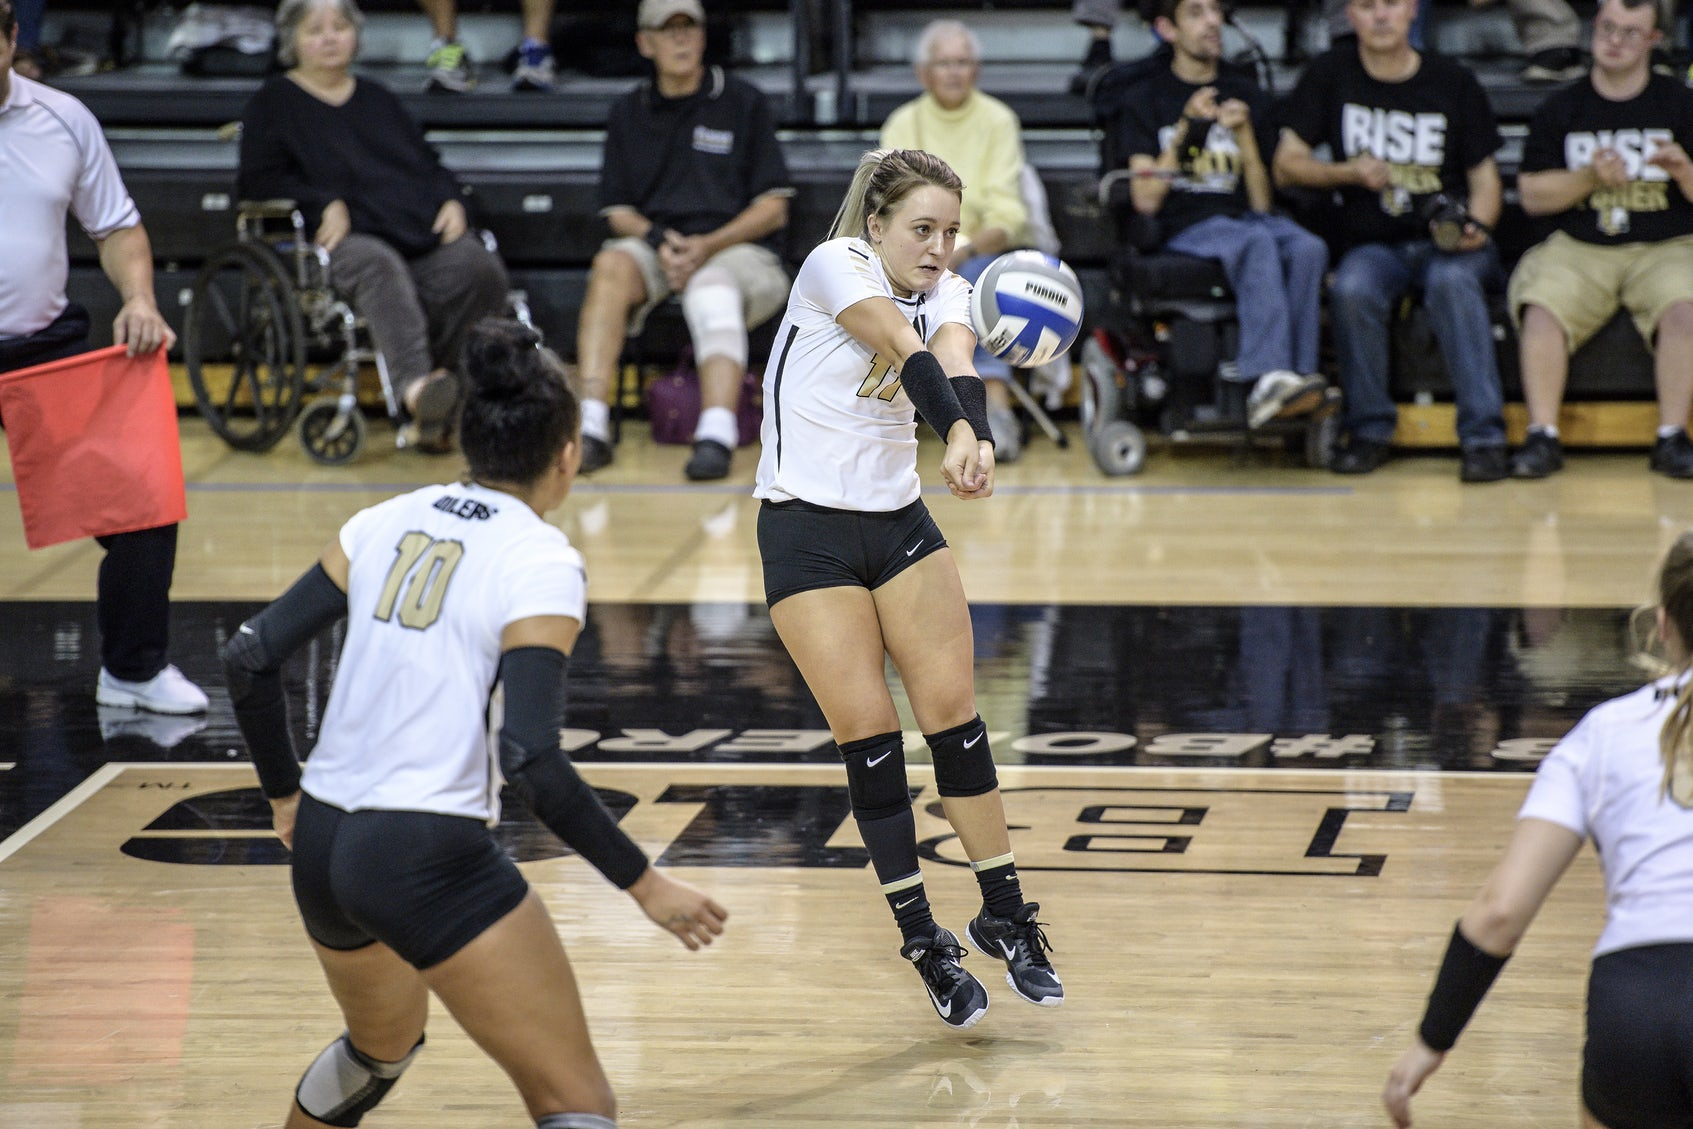 The Boilers spent a lot of time barely staving off Penn State runs.